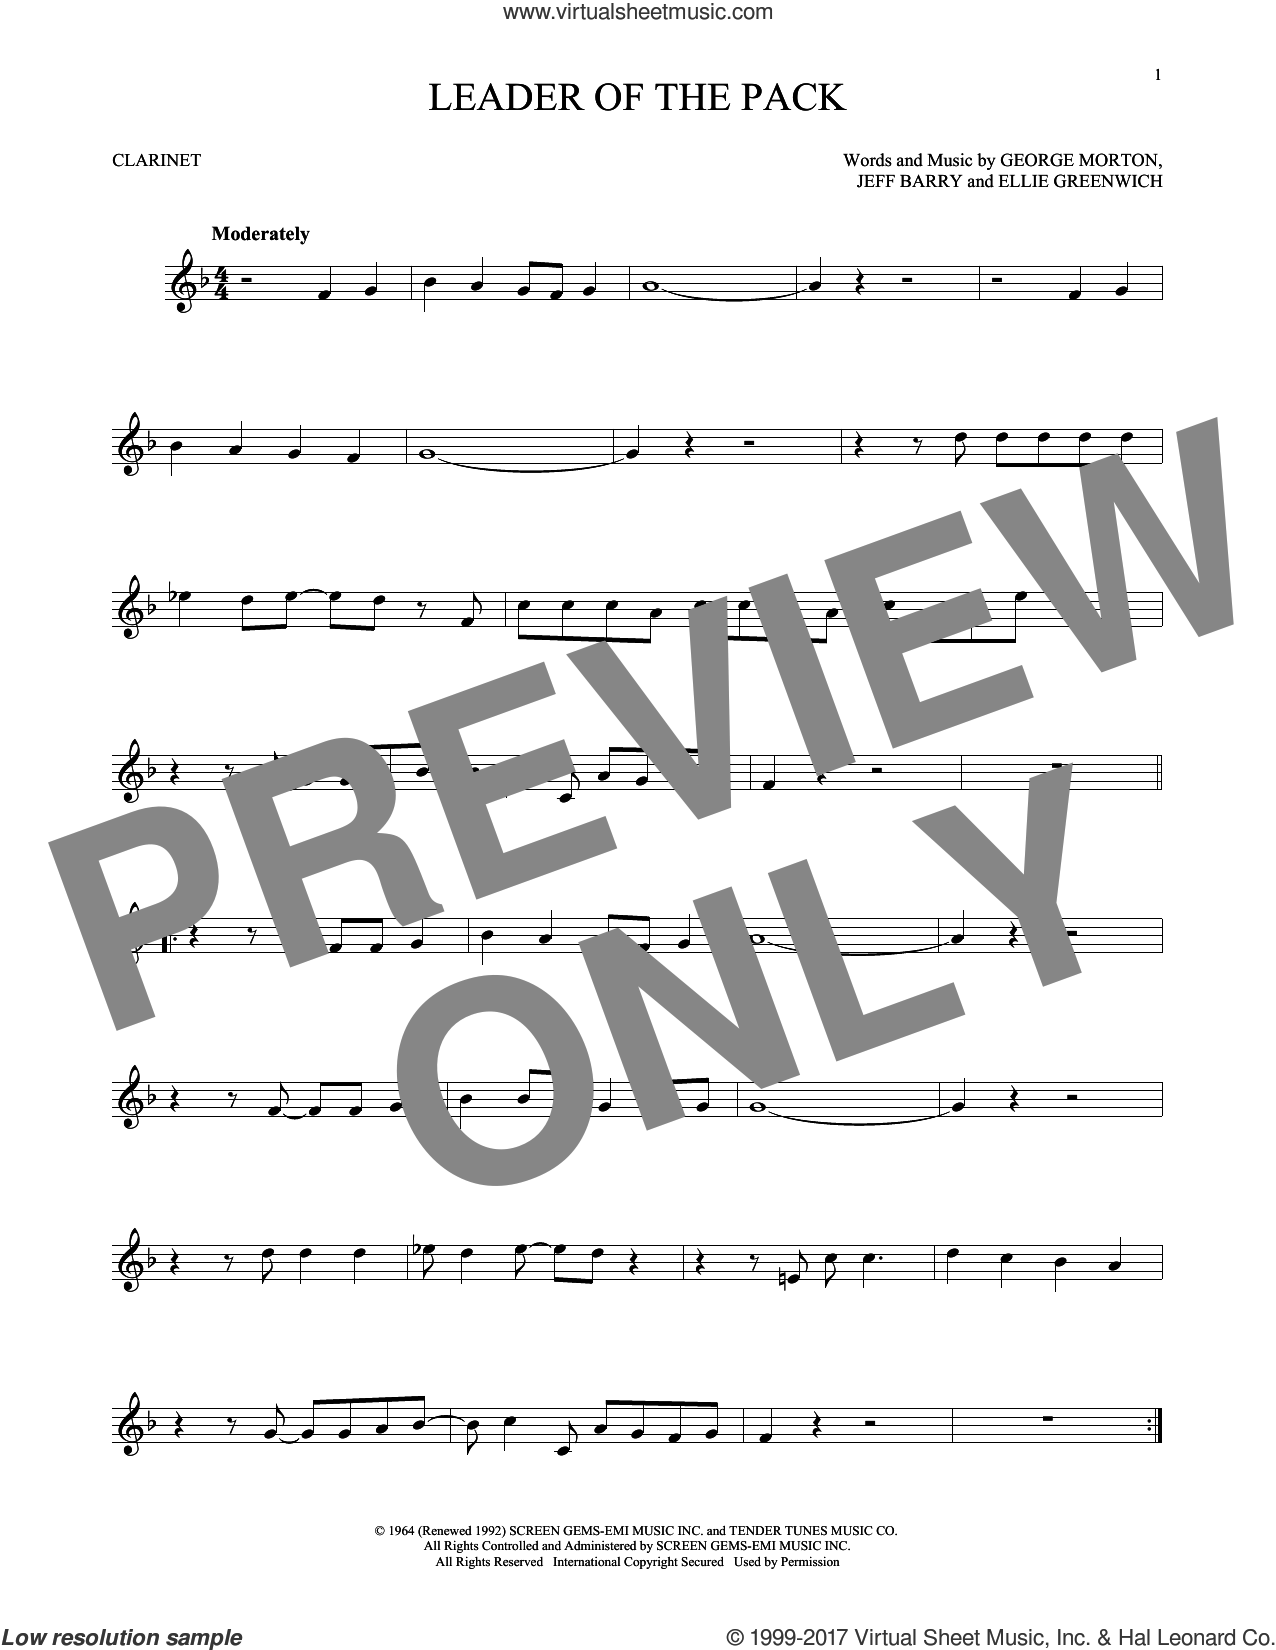 Leader Of The Pack sheet music for clarinet solo by The Shangri-Las, Ellie Greenwich, George Morton and Jeff Barry, intermediate skill level